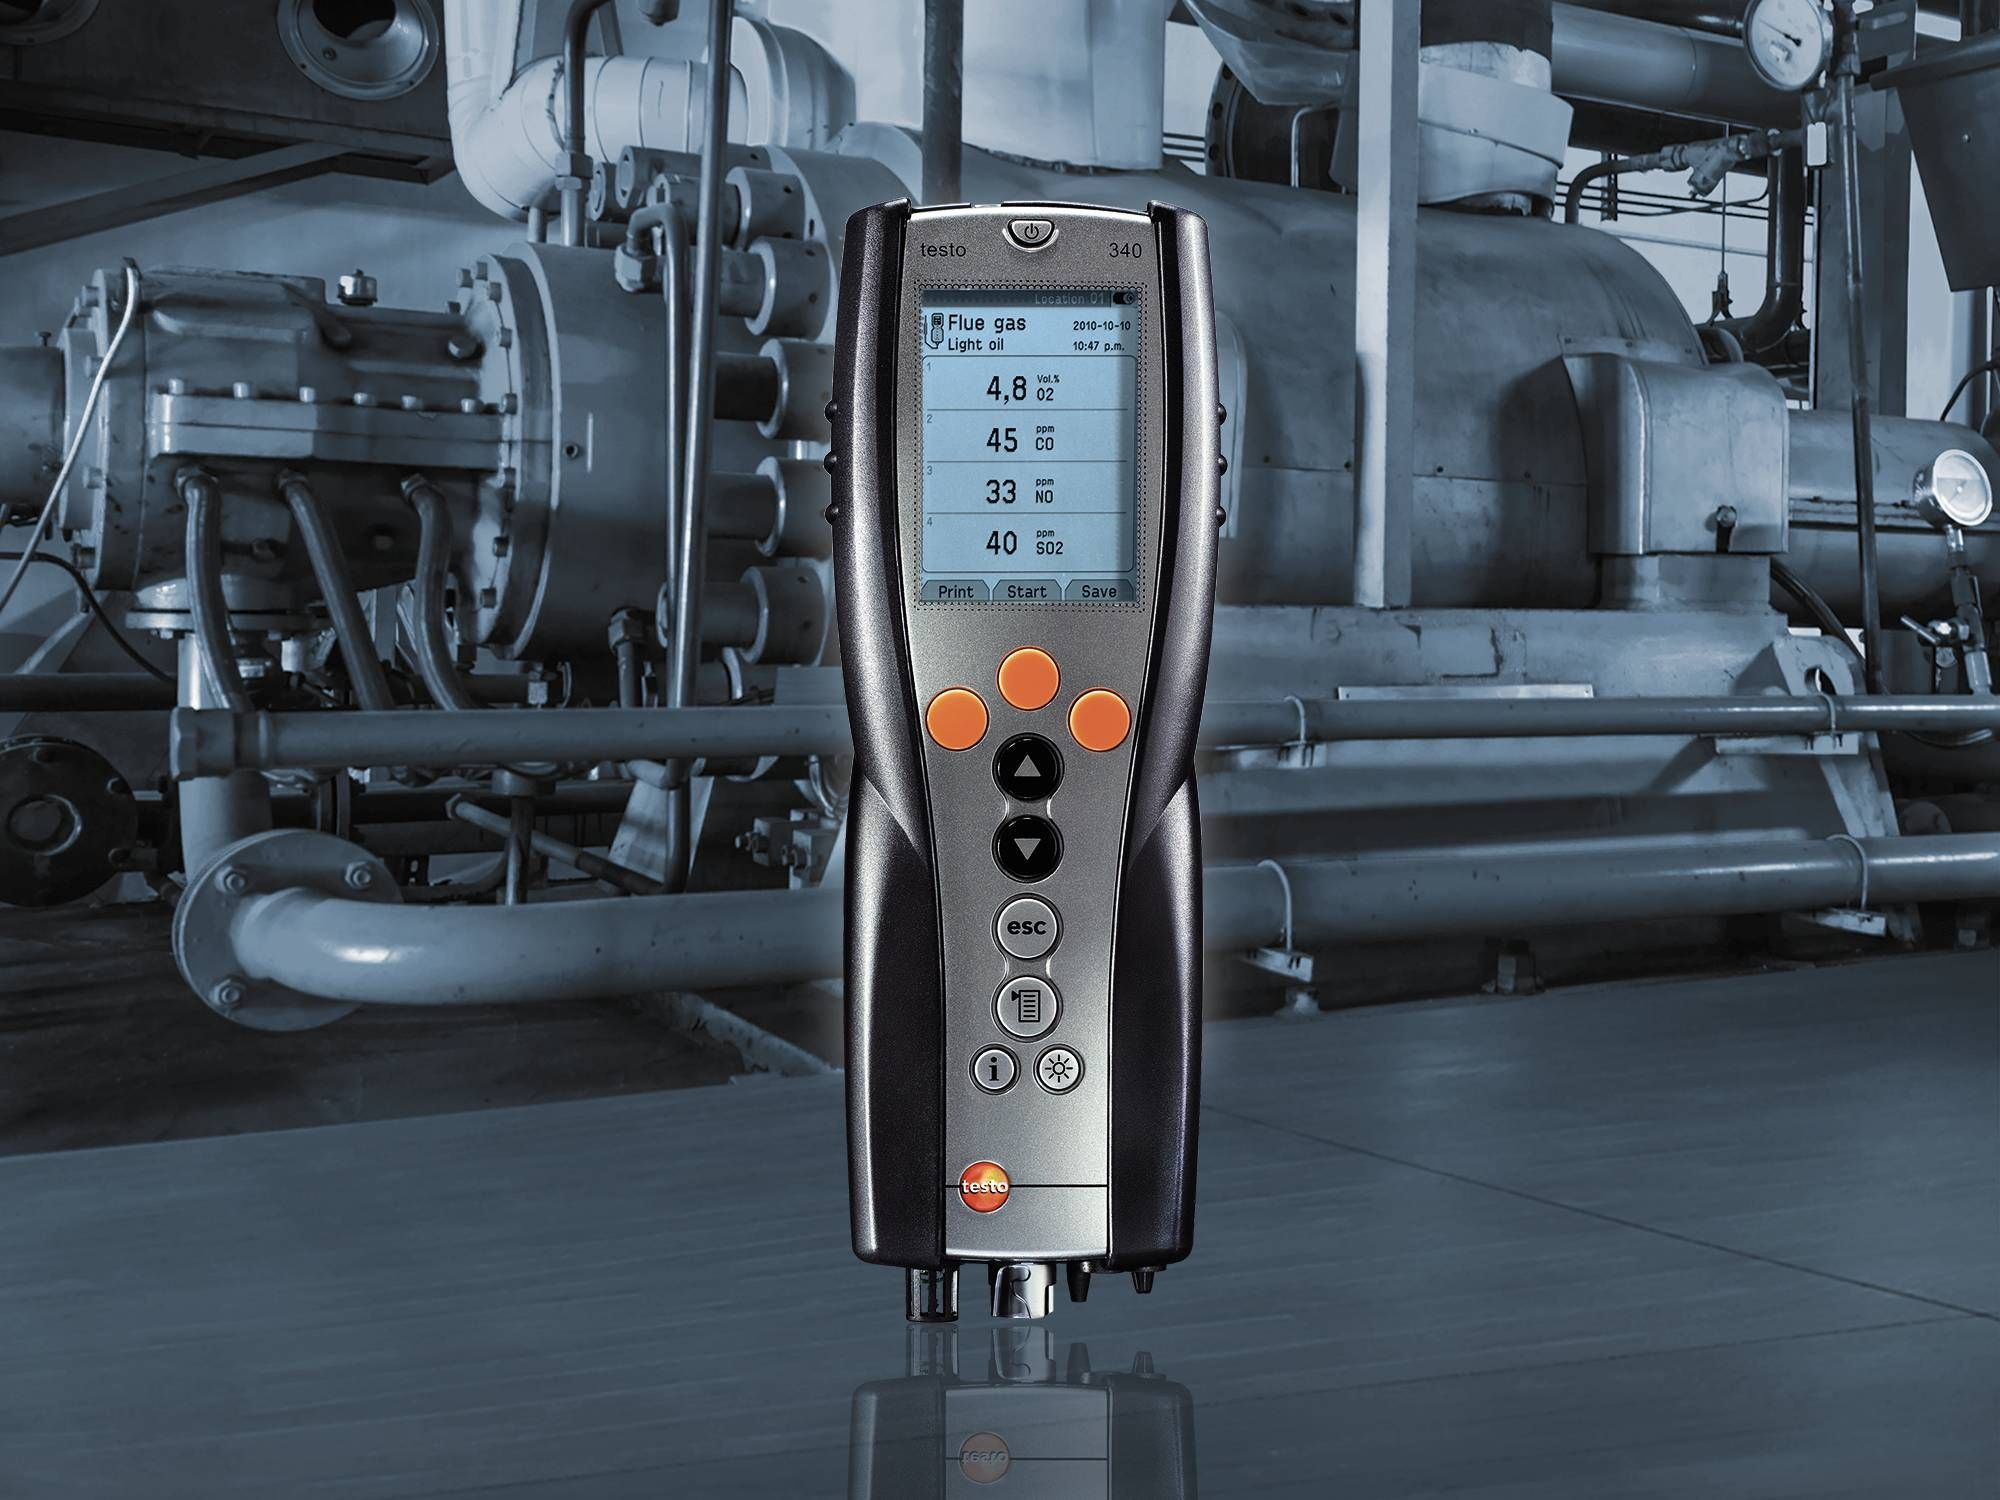 The Testo 340 add value to AGL Energy Services.